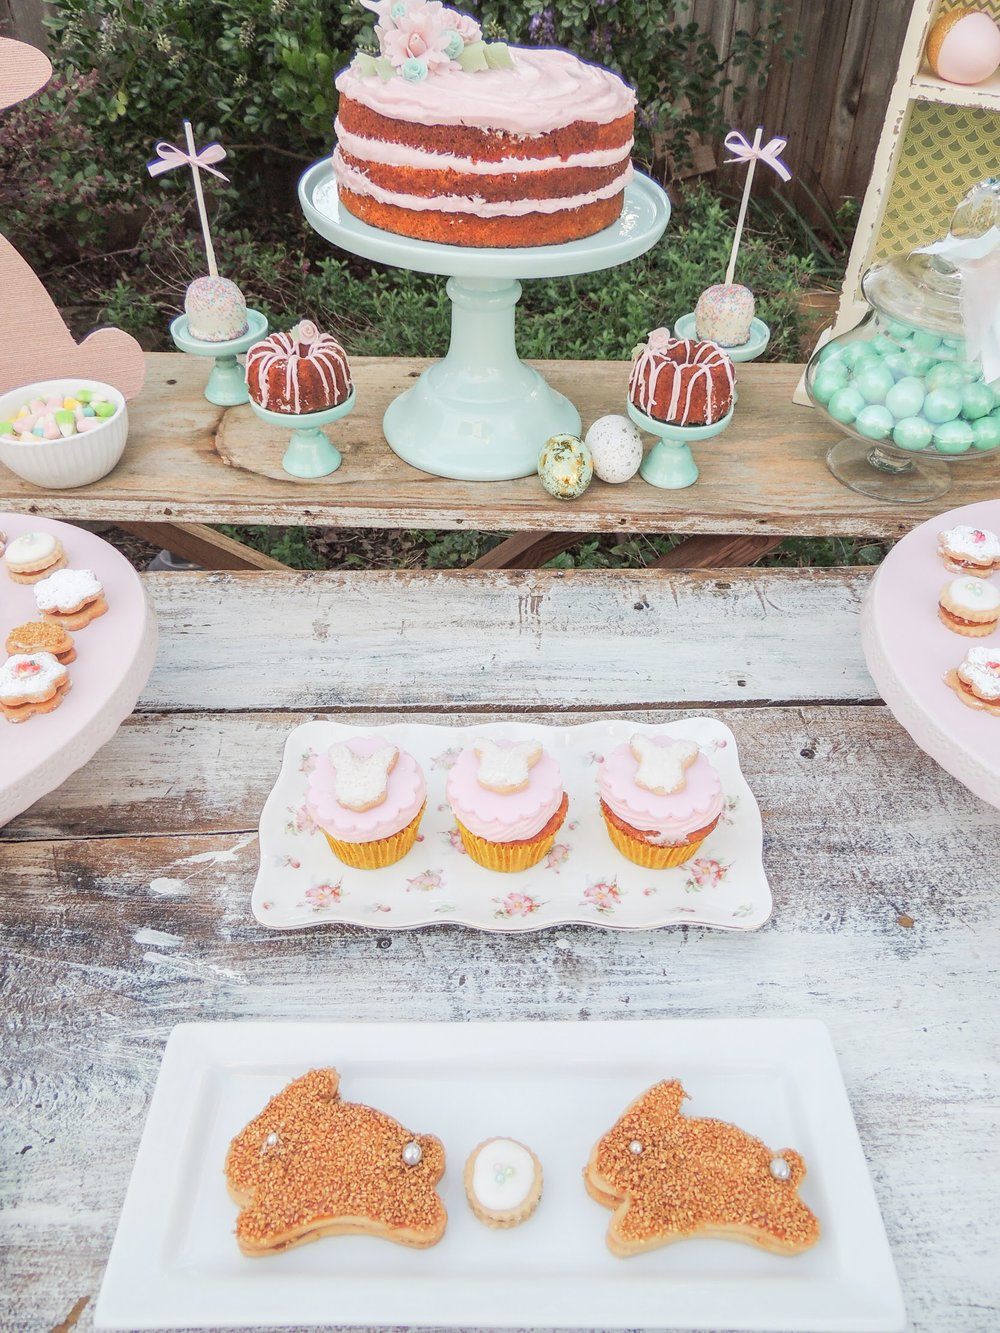 Easter Dessert Party ideas as seen on Mint Event Design www.minteventdesign.com #eastertable #easterdecor #easterparty #partyideas #easterideas